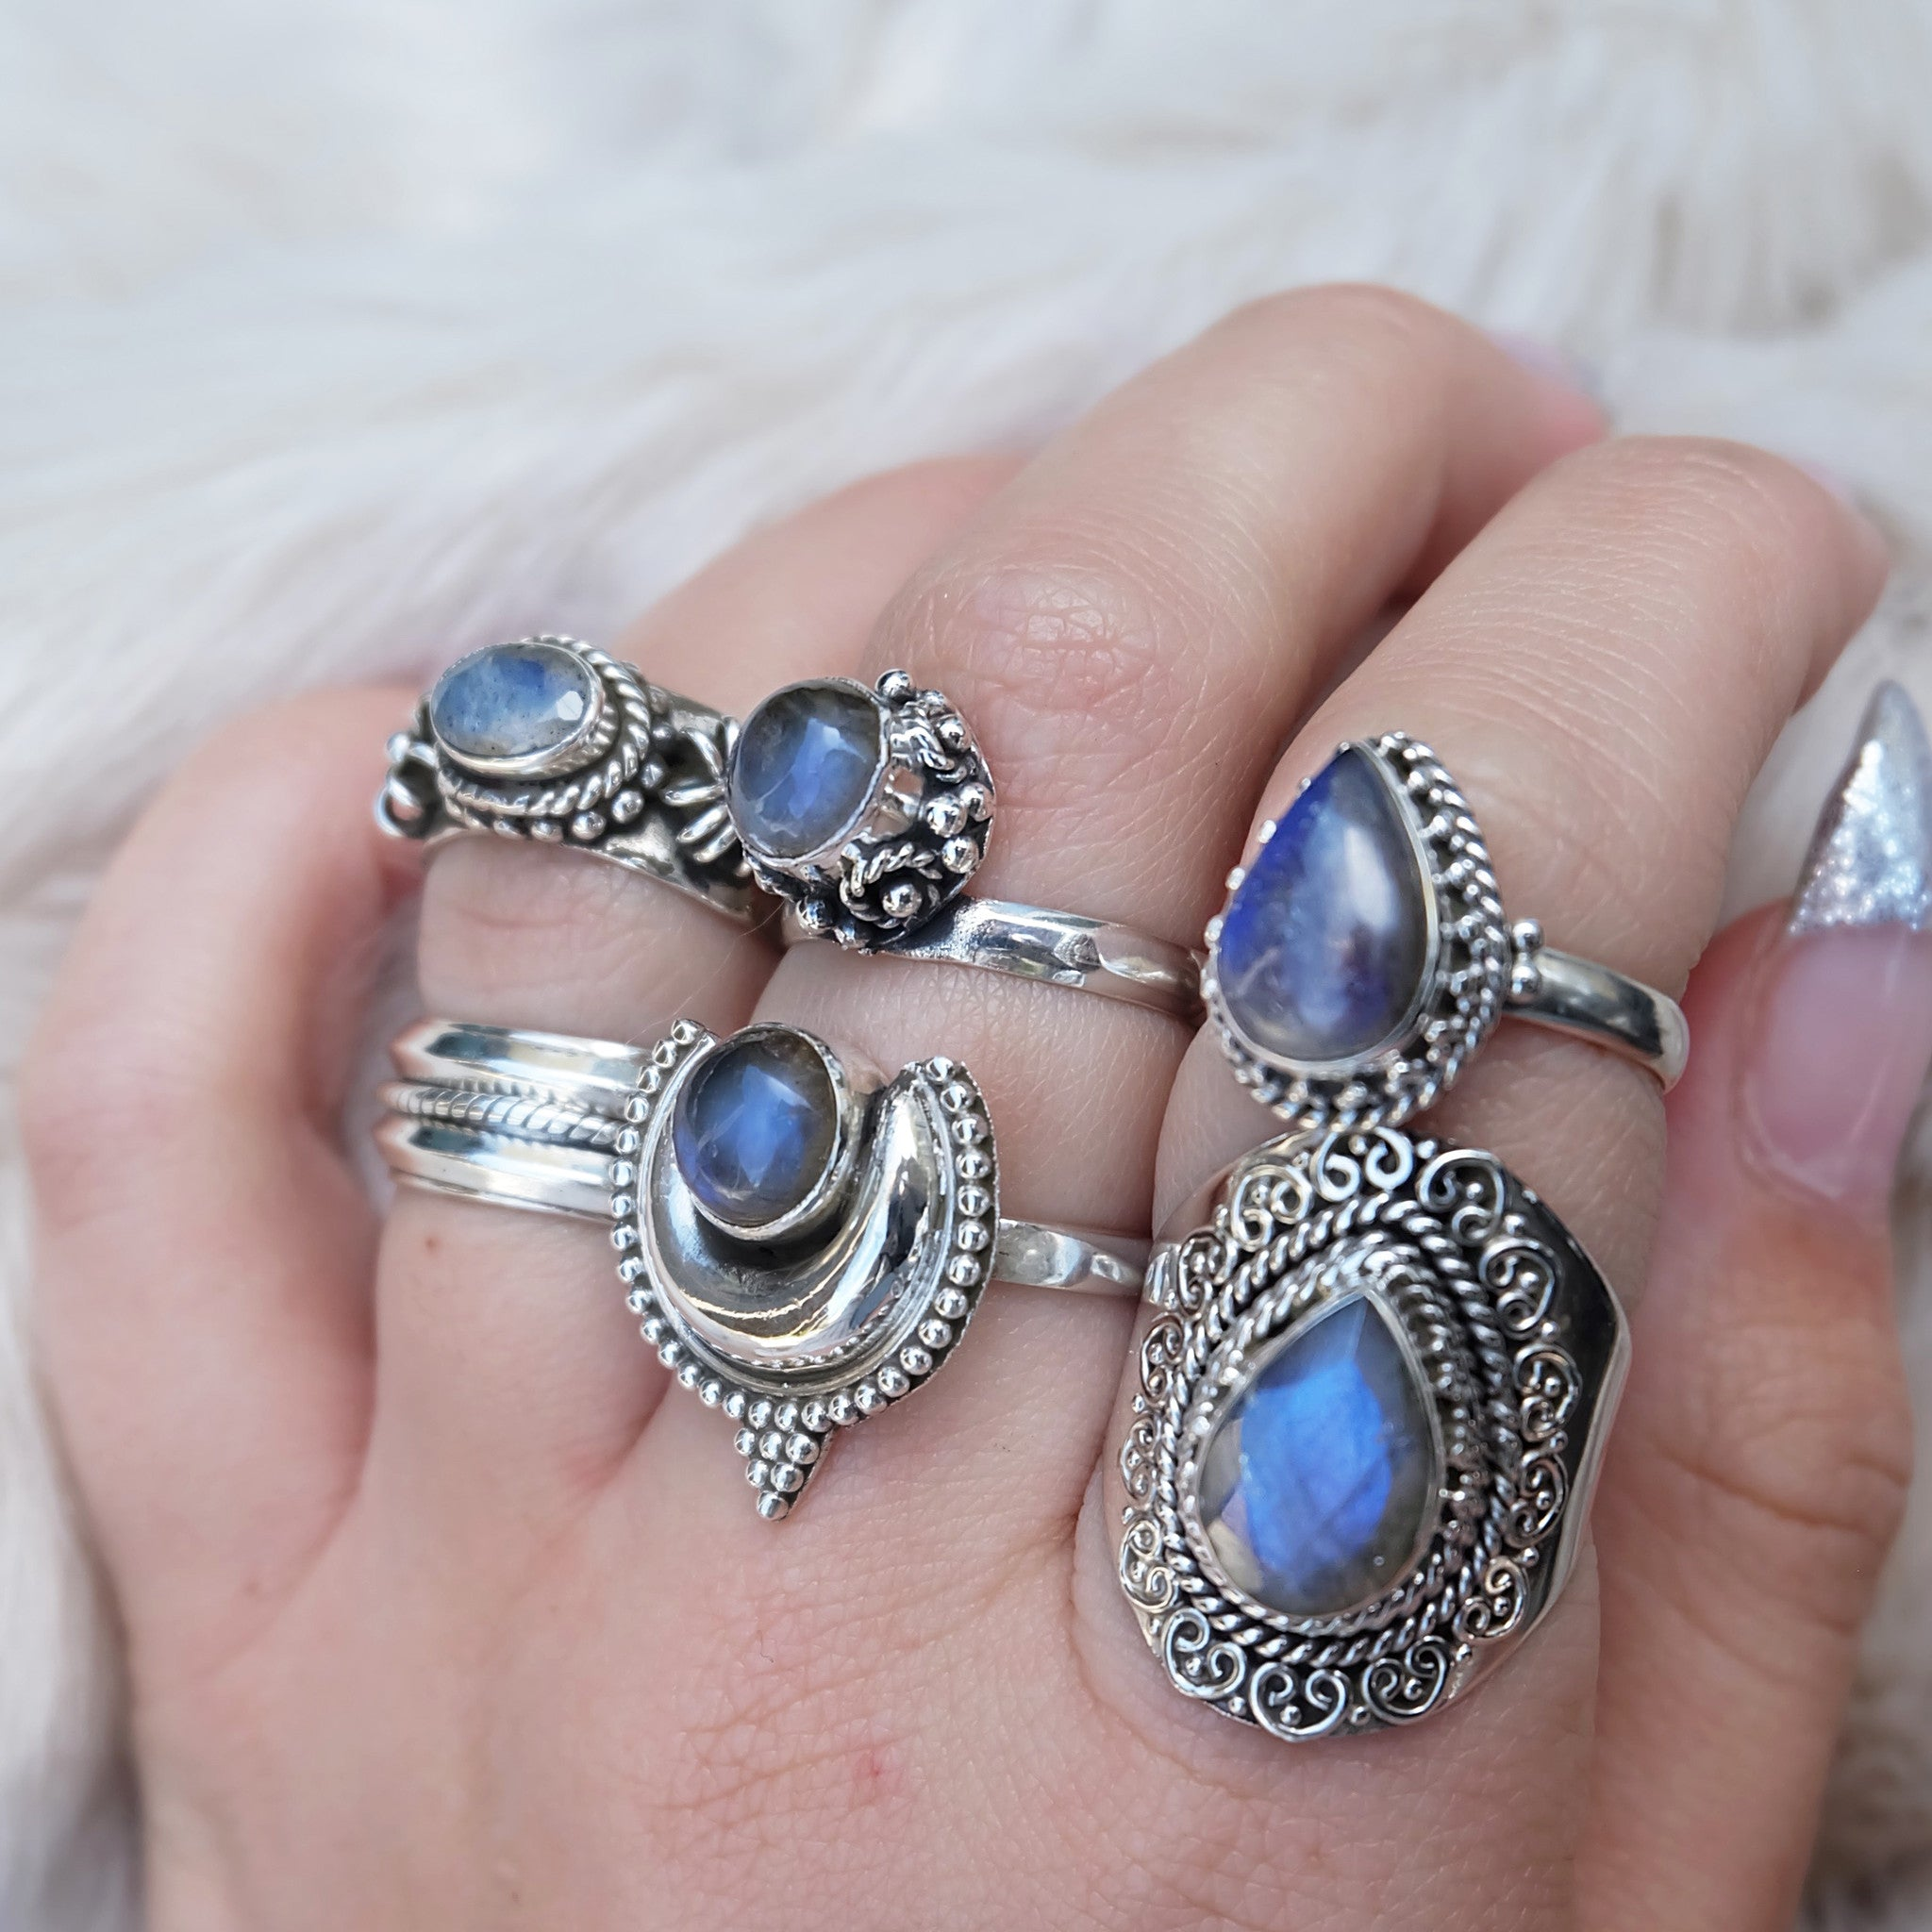 RAINBOW MOONSTONE DROPLET RING